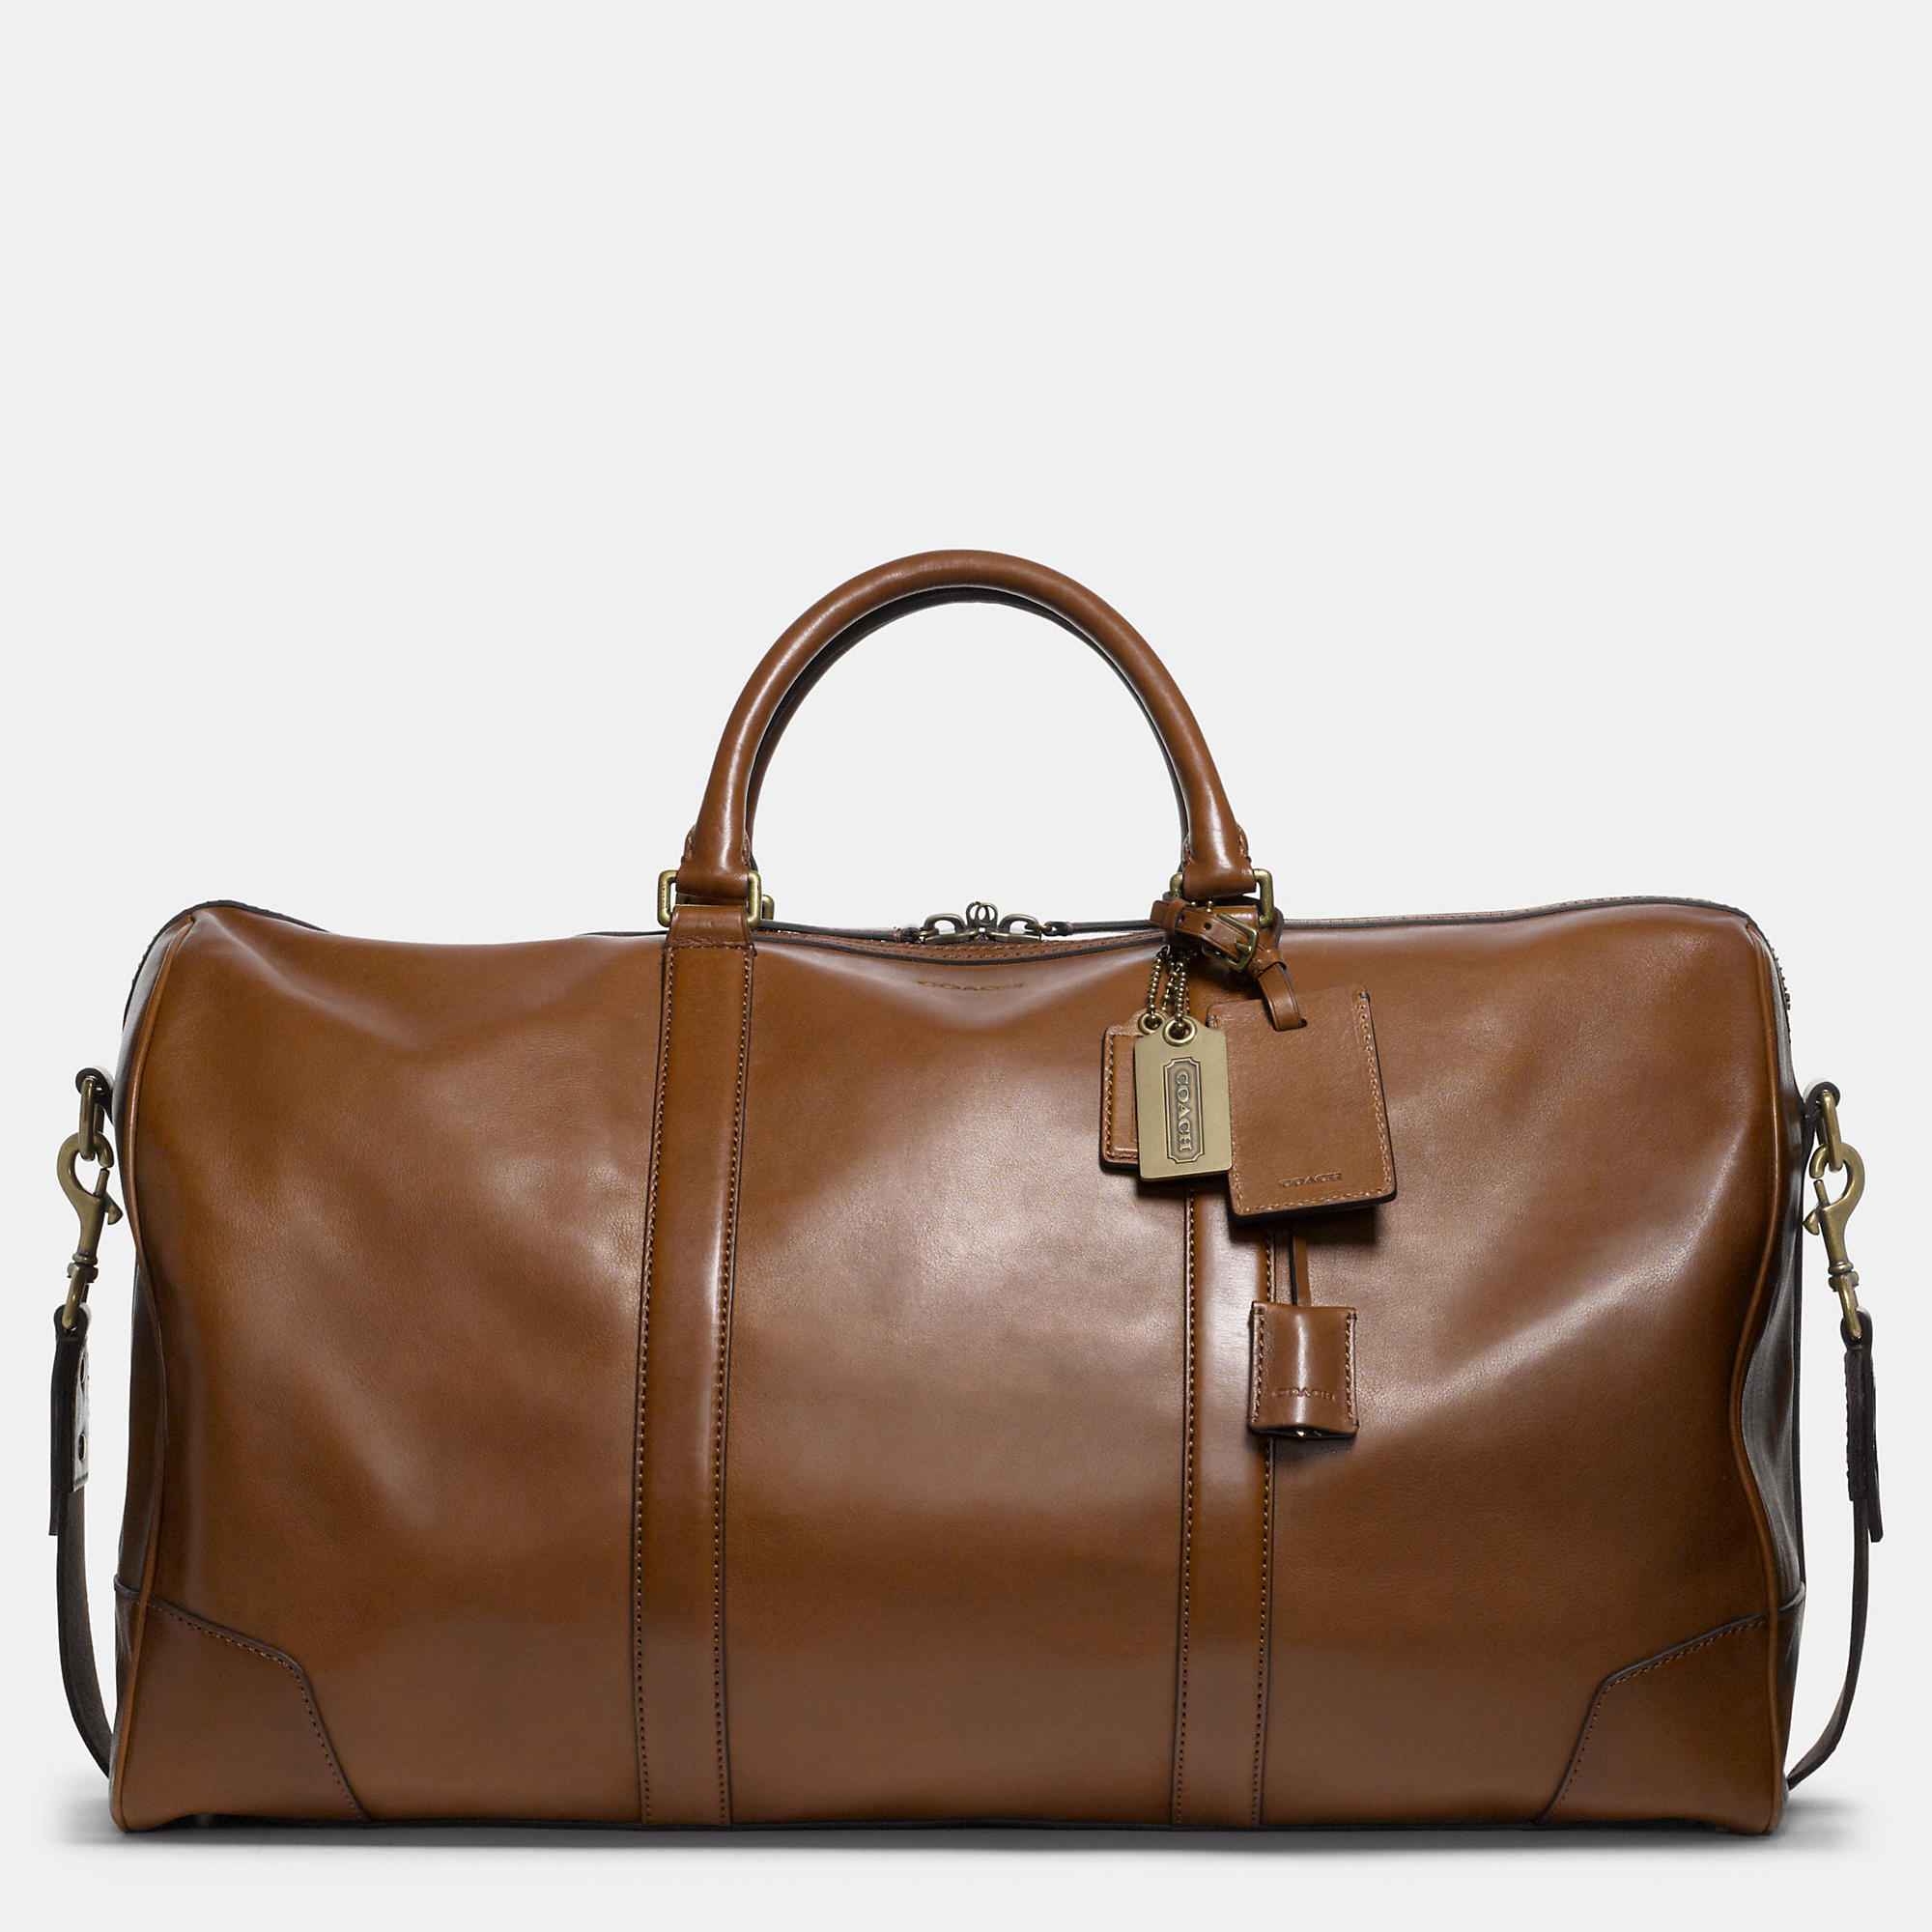 Coach Bleecker Cabin Bag In Leather in Brown for Men